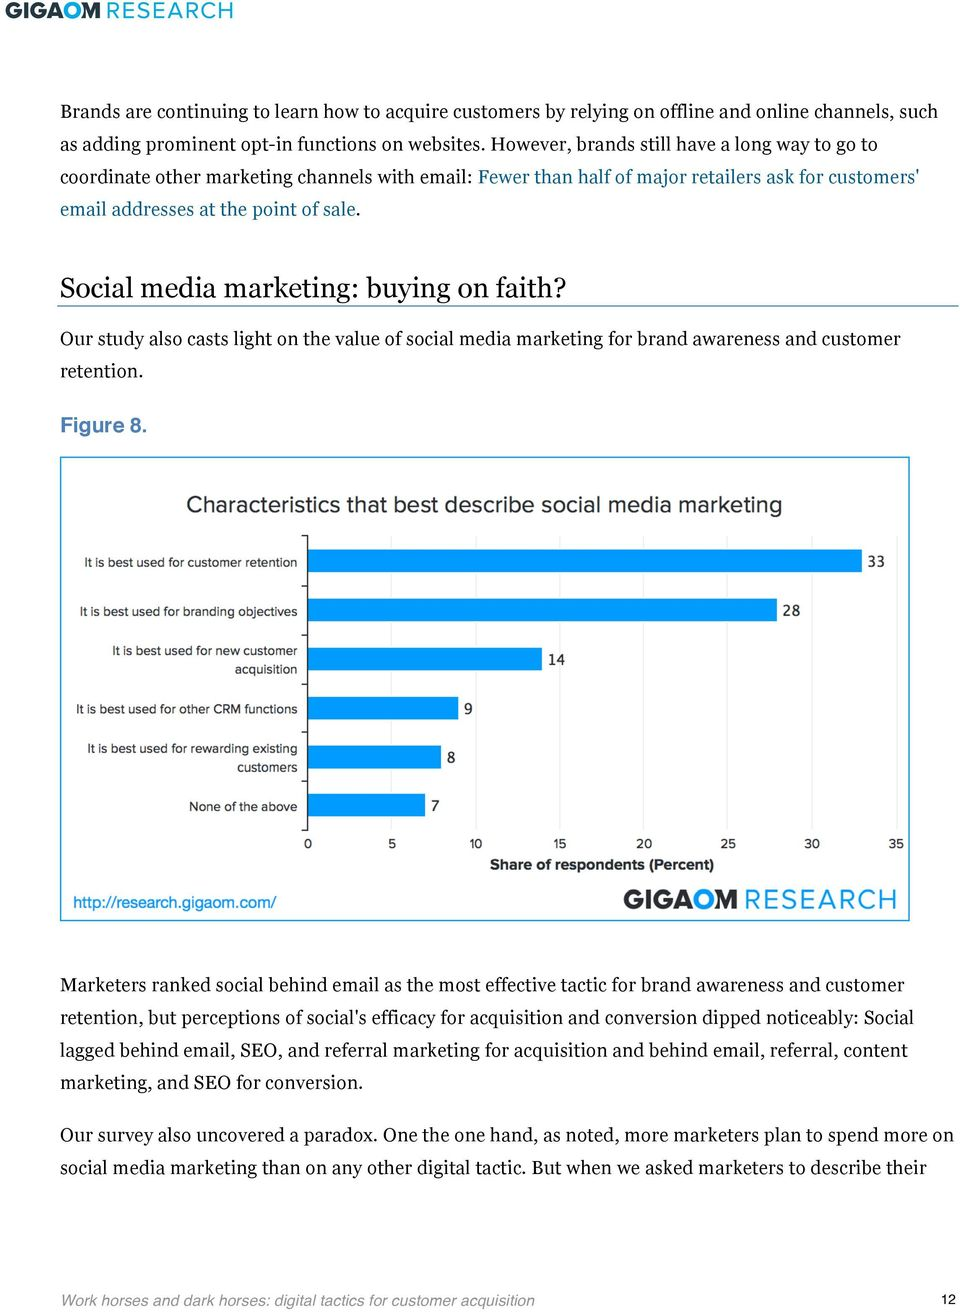 Social media marketing: buying on faith? Our study also casts light on the value of social media marketing for brand awareness and customer retention. Figure 8.